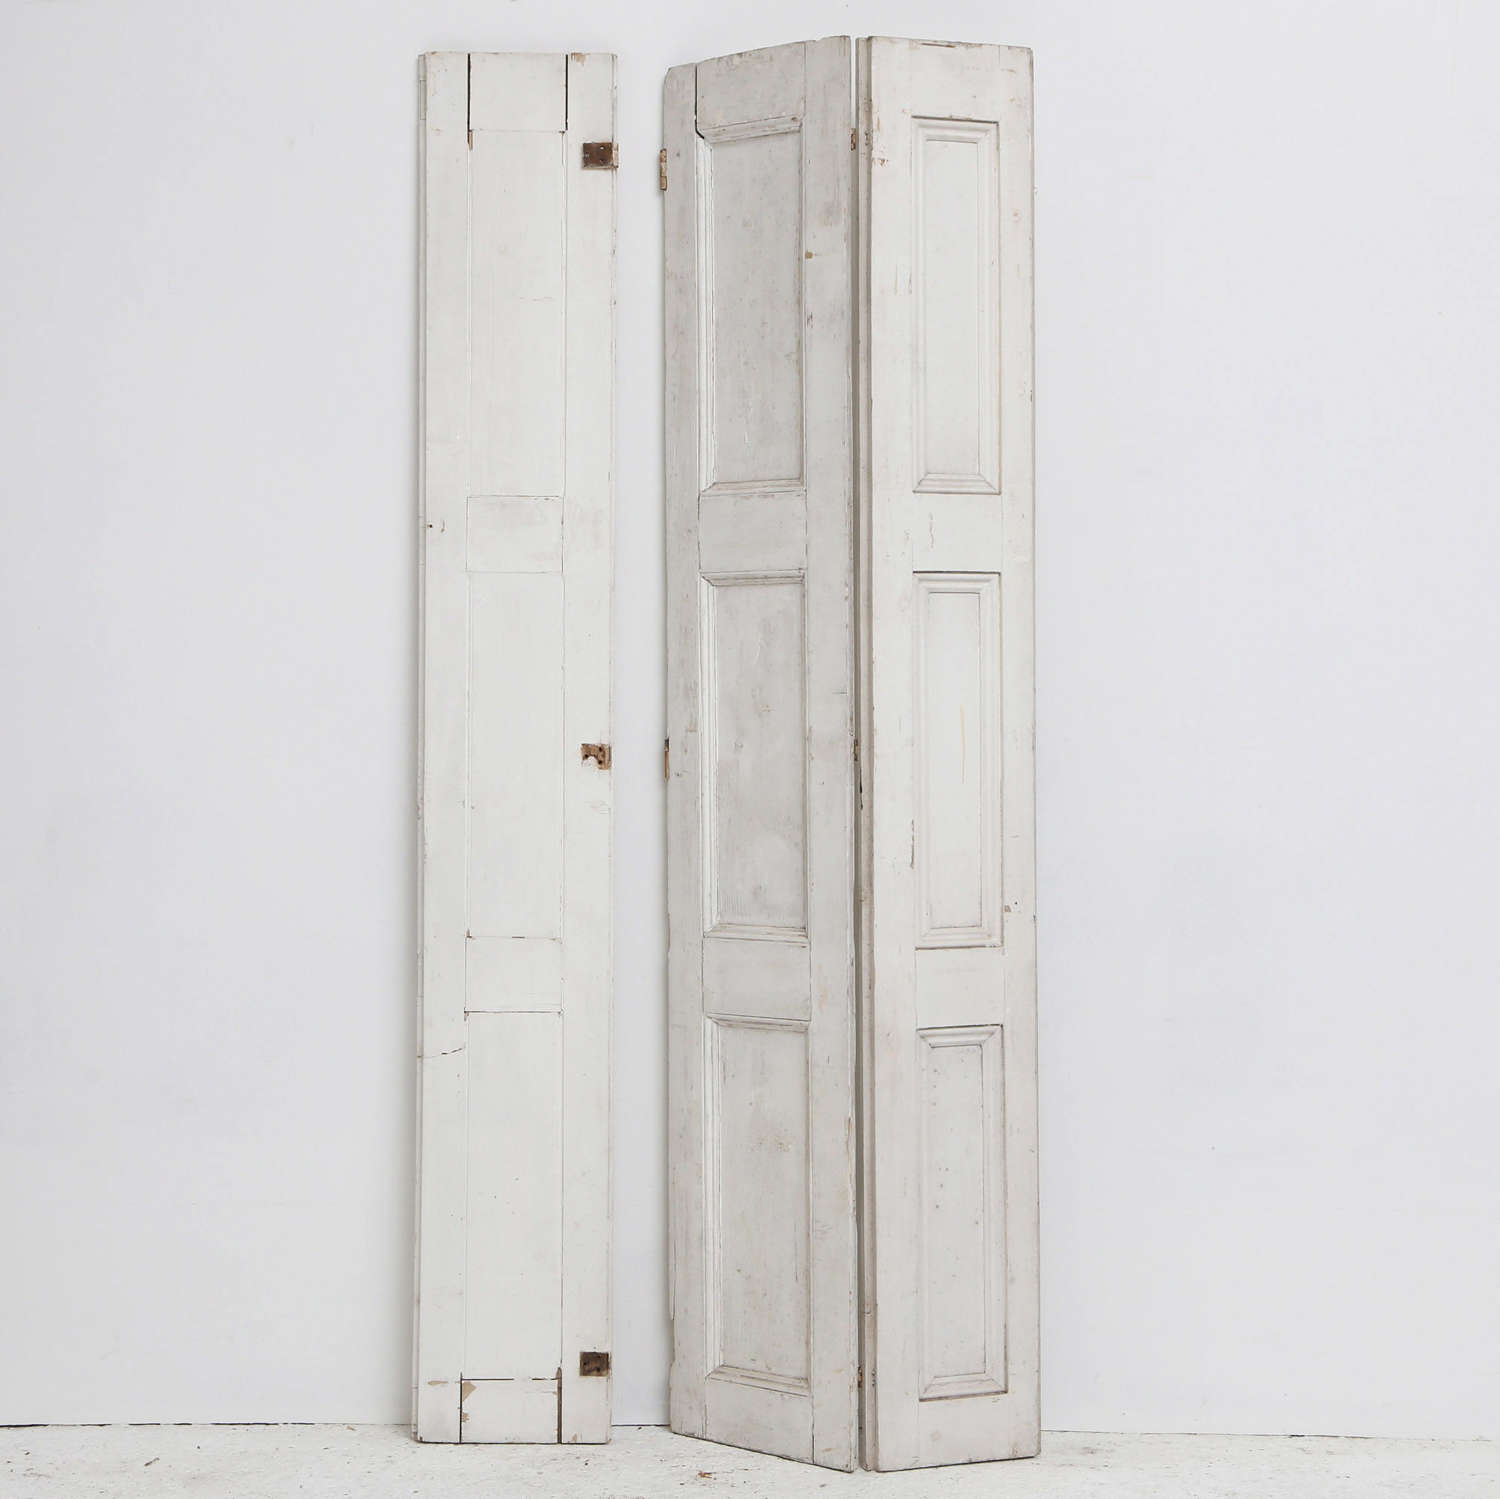 19th century Painted Pine shutter with extra panel